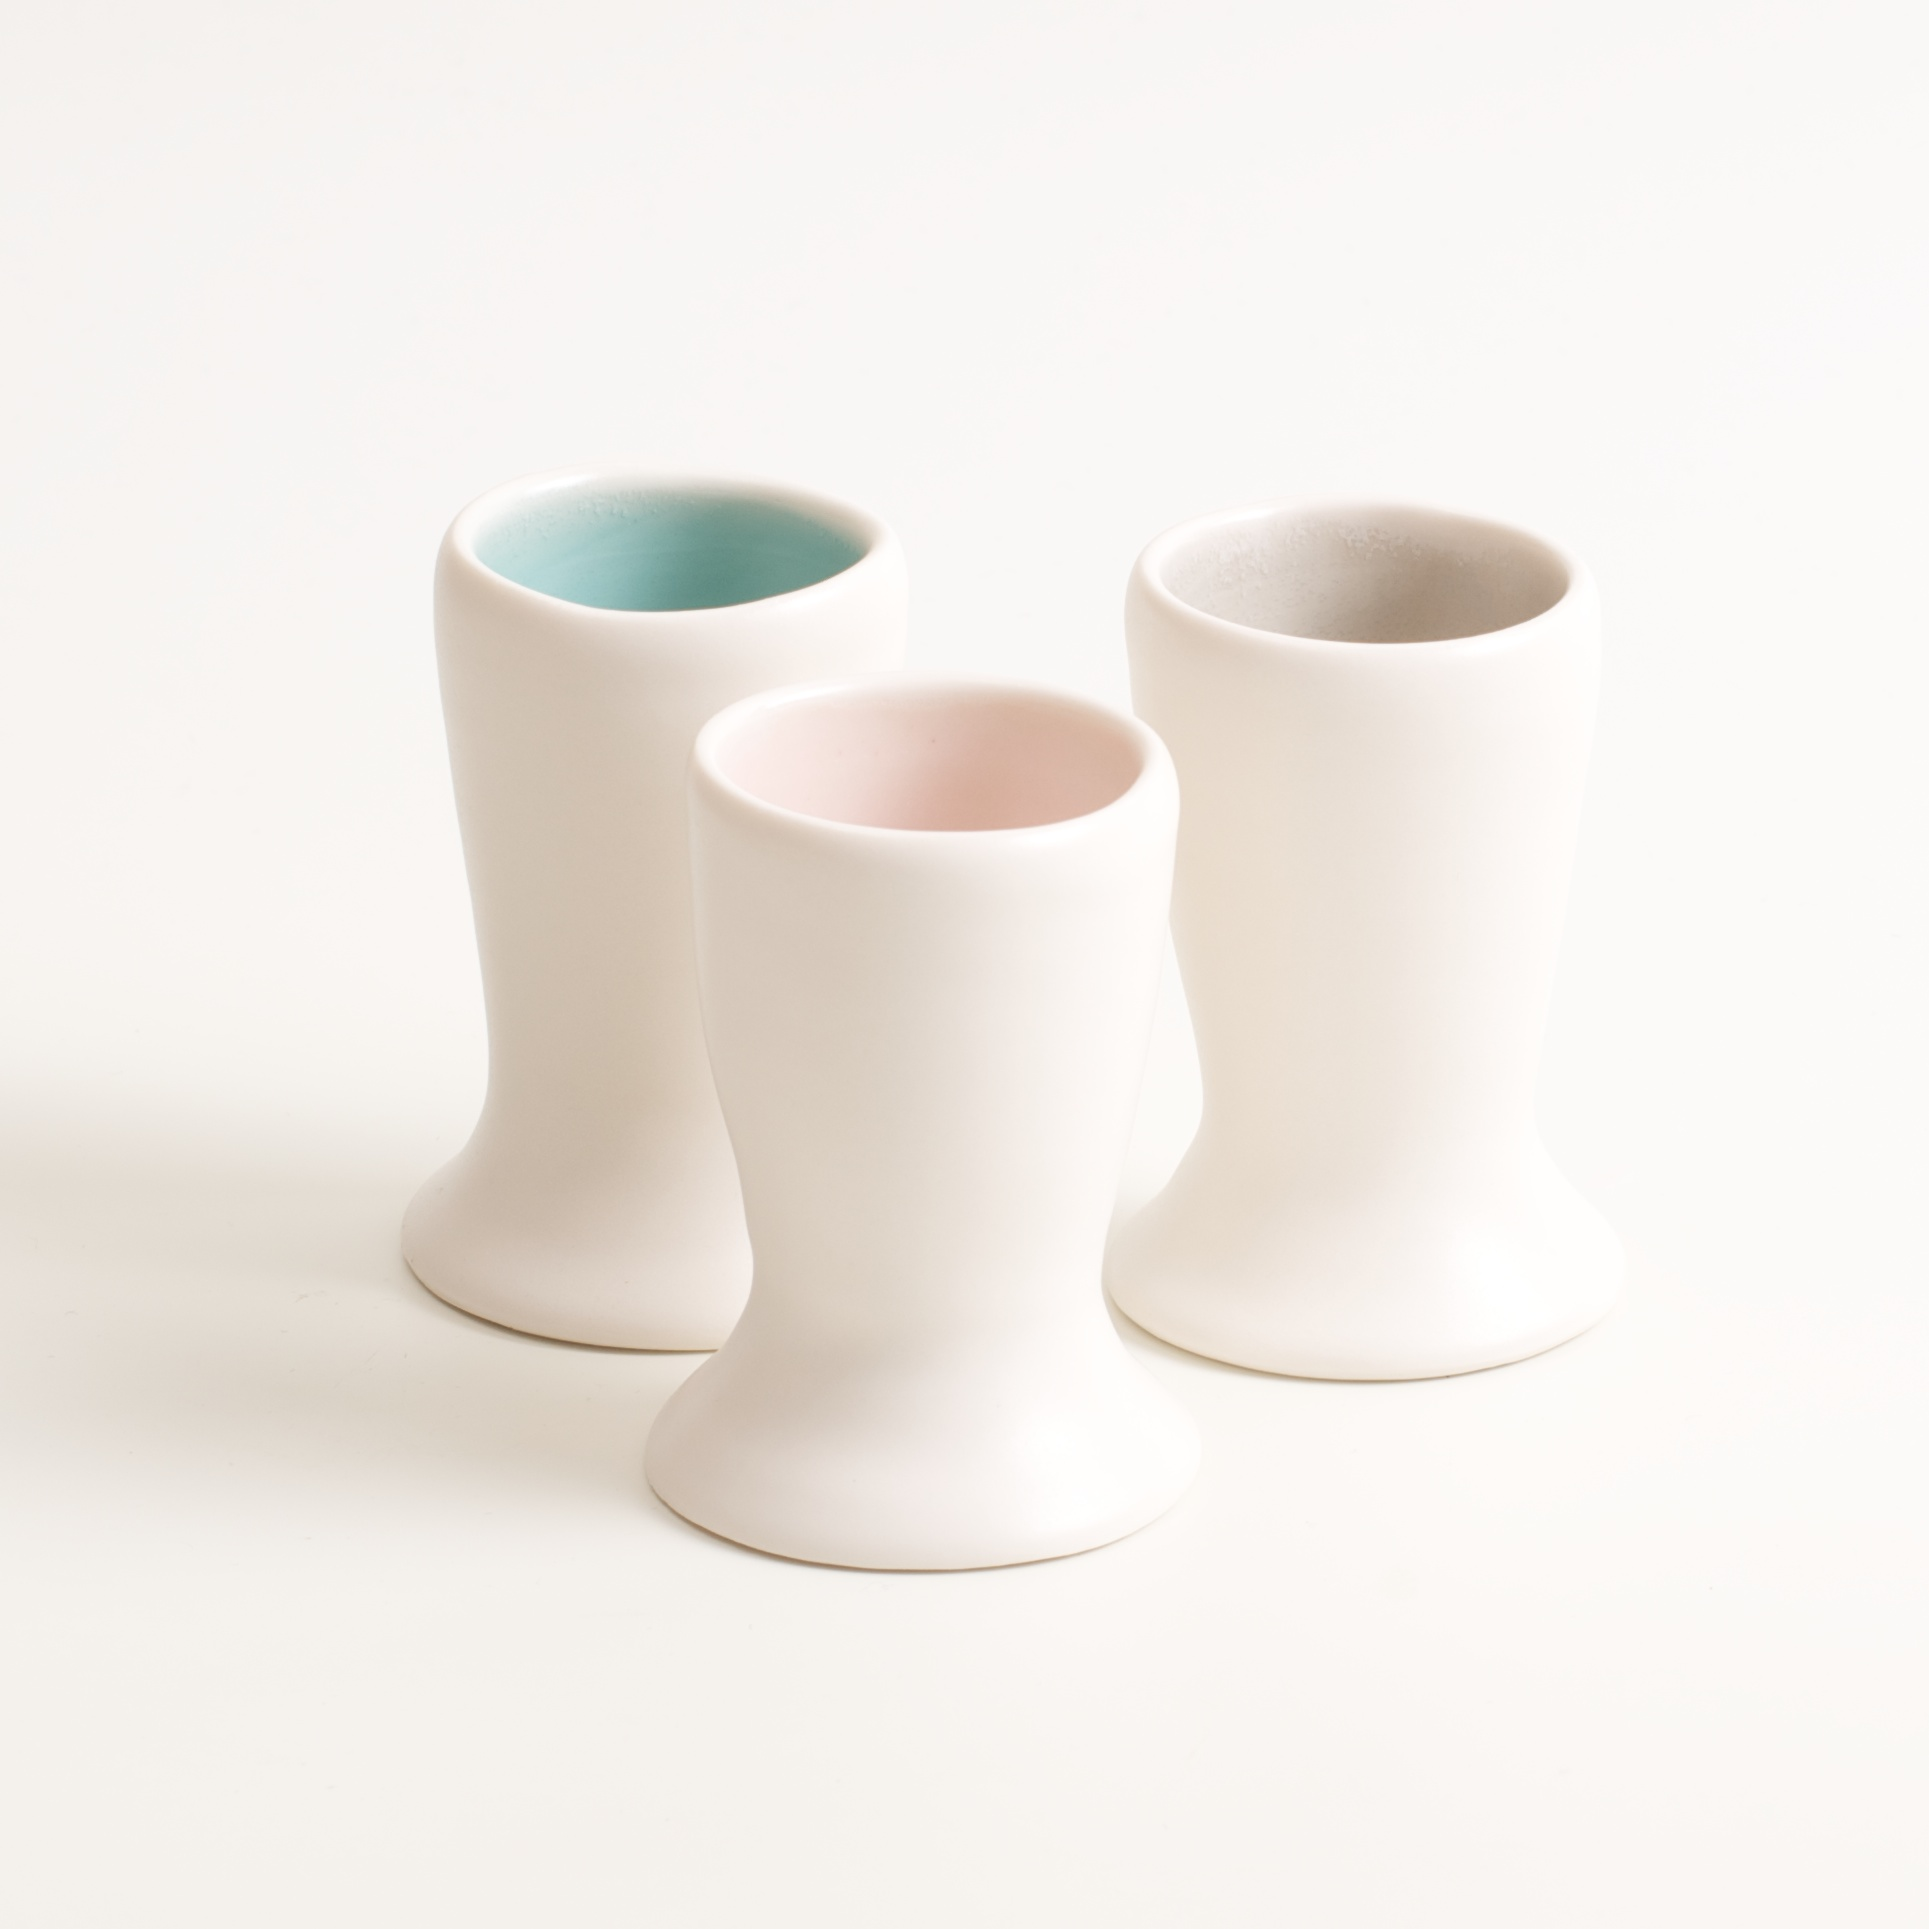 handmade porcelain- tableware- dinnerware- breakfast- eggs- build eggs- egg cup- turquoise - grey- pink